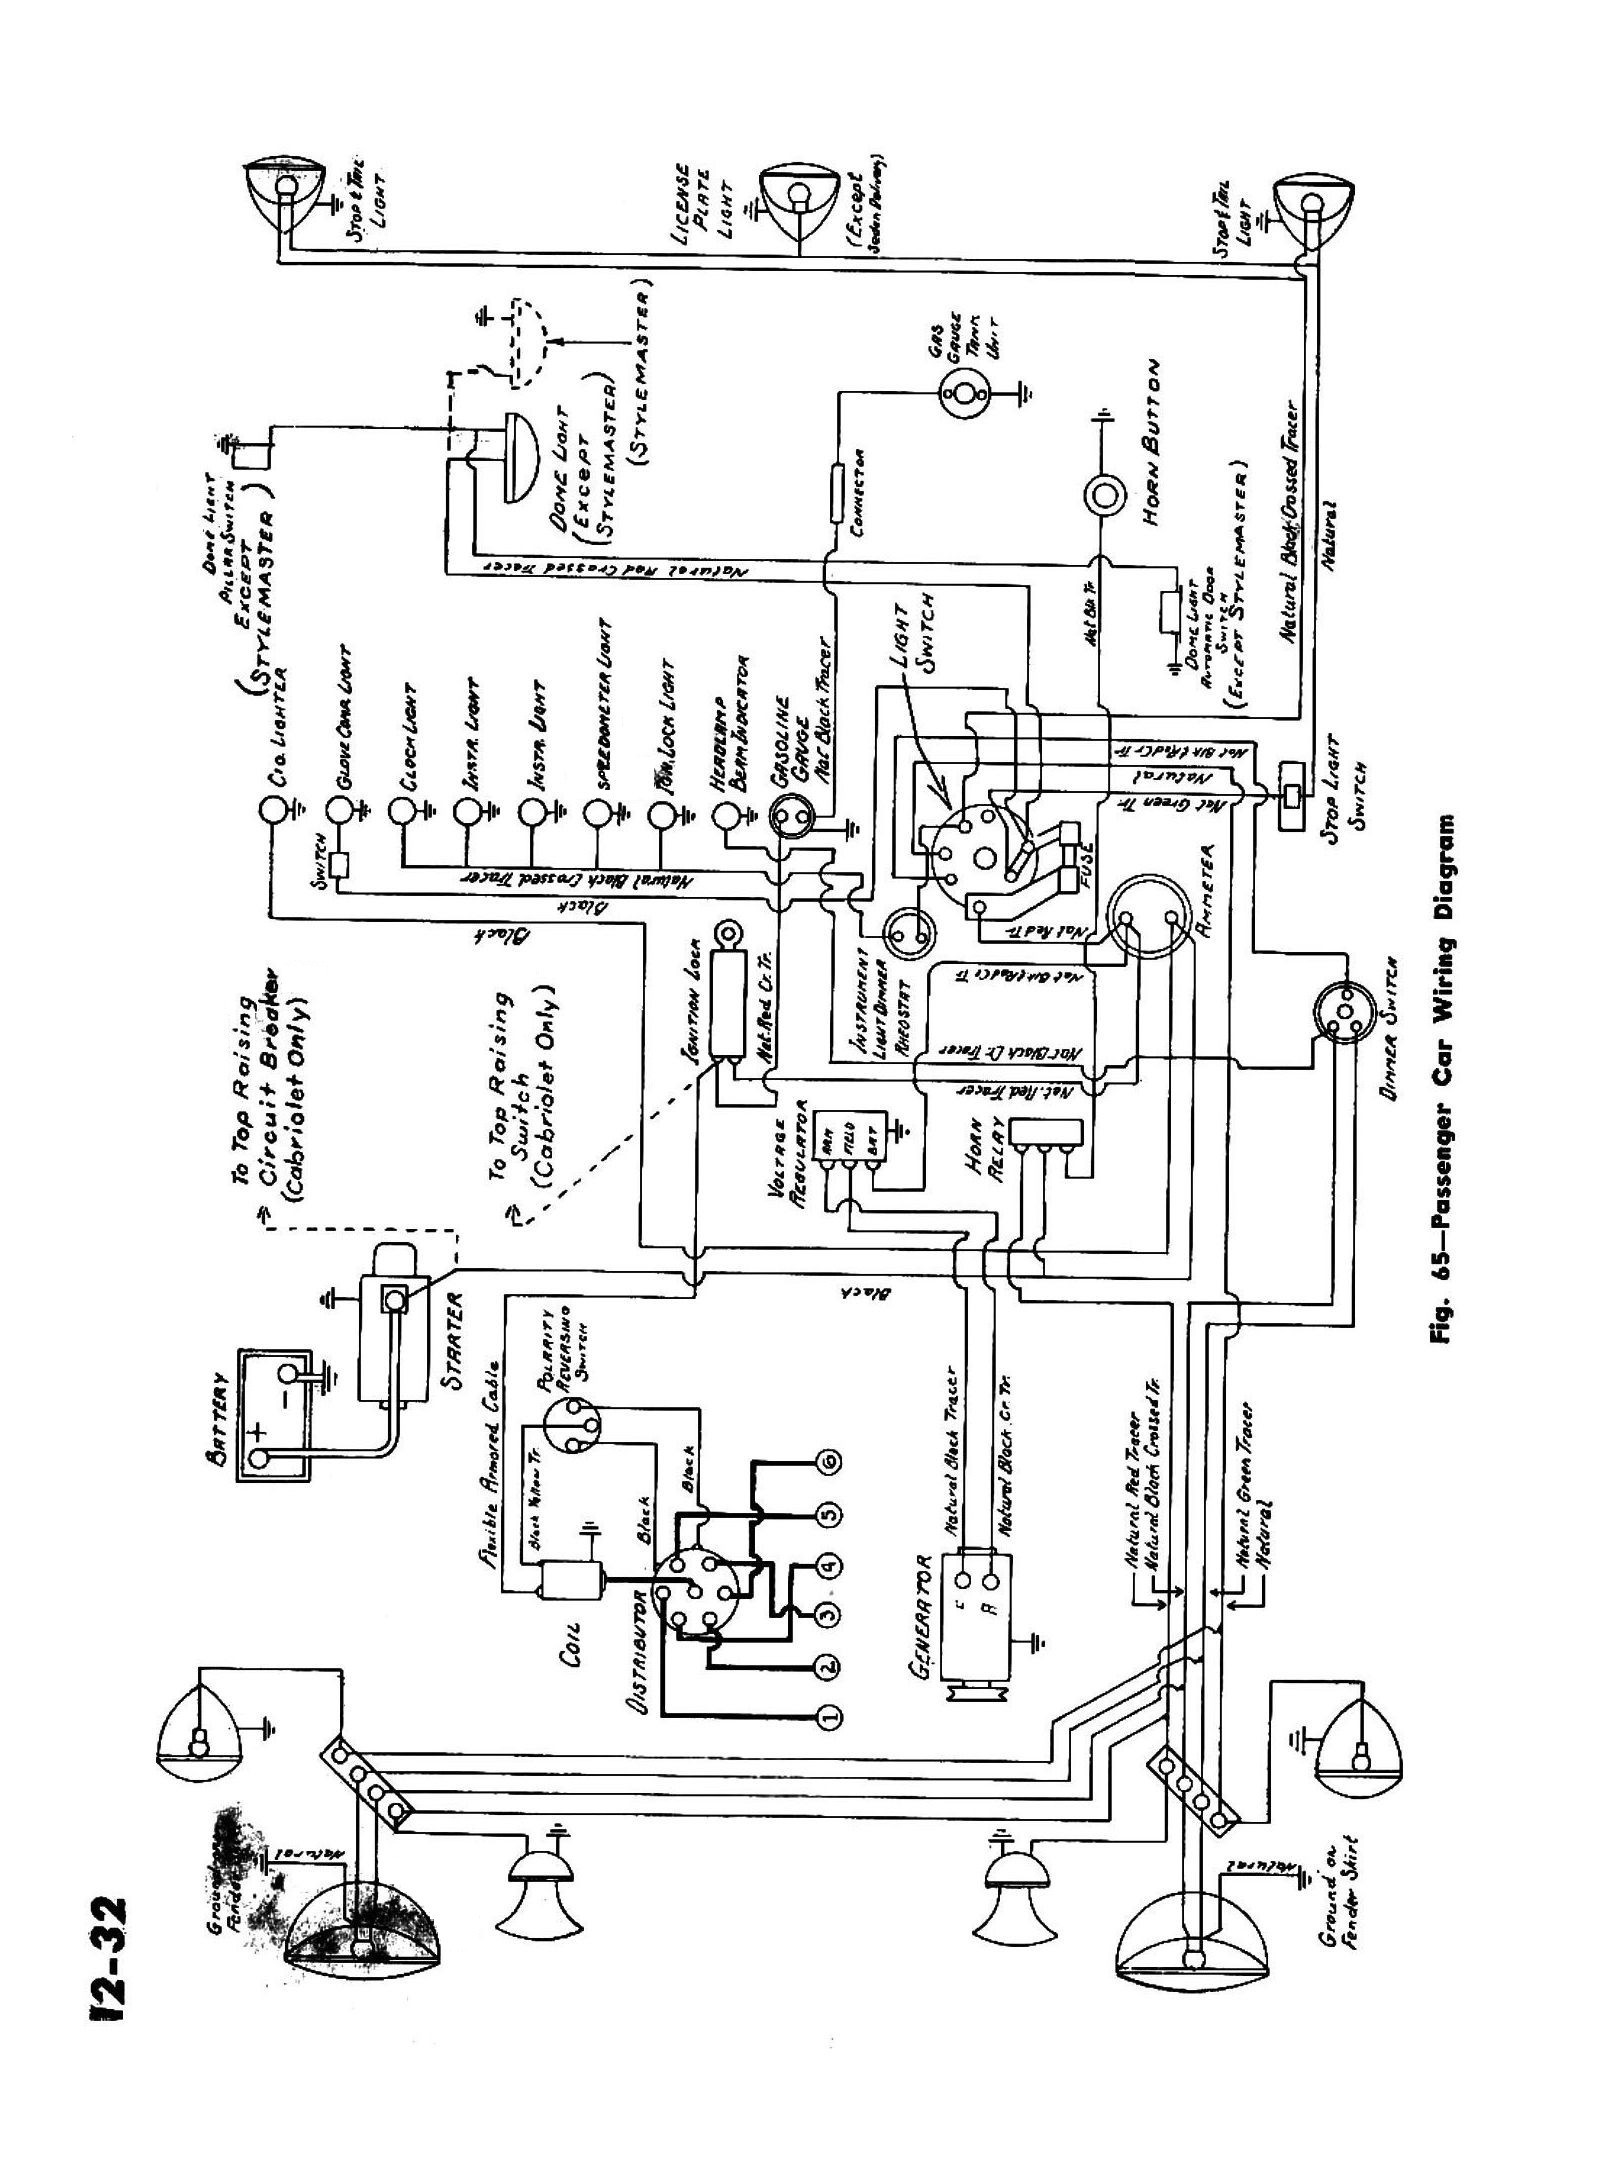 Car Wiring Diagrams Schematic Chevy Wiring Diagrams Of Car Wiring Diagrams Schematic